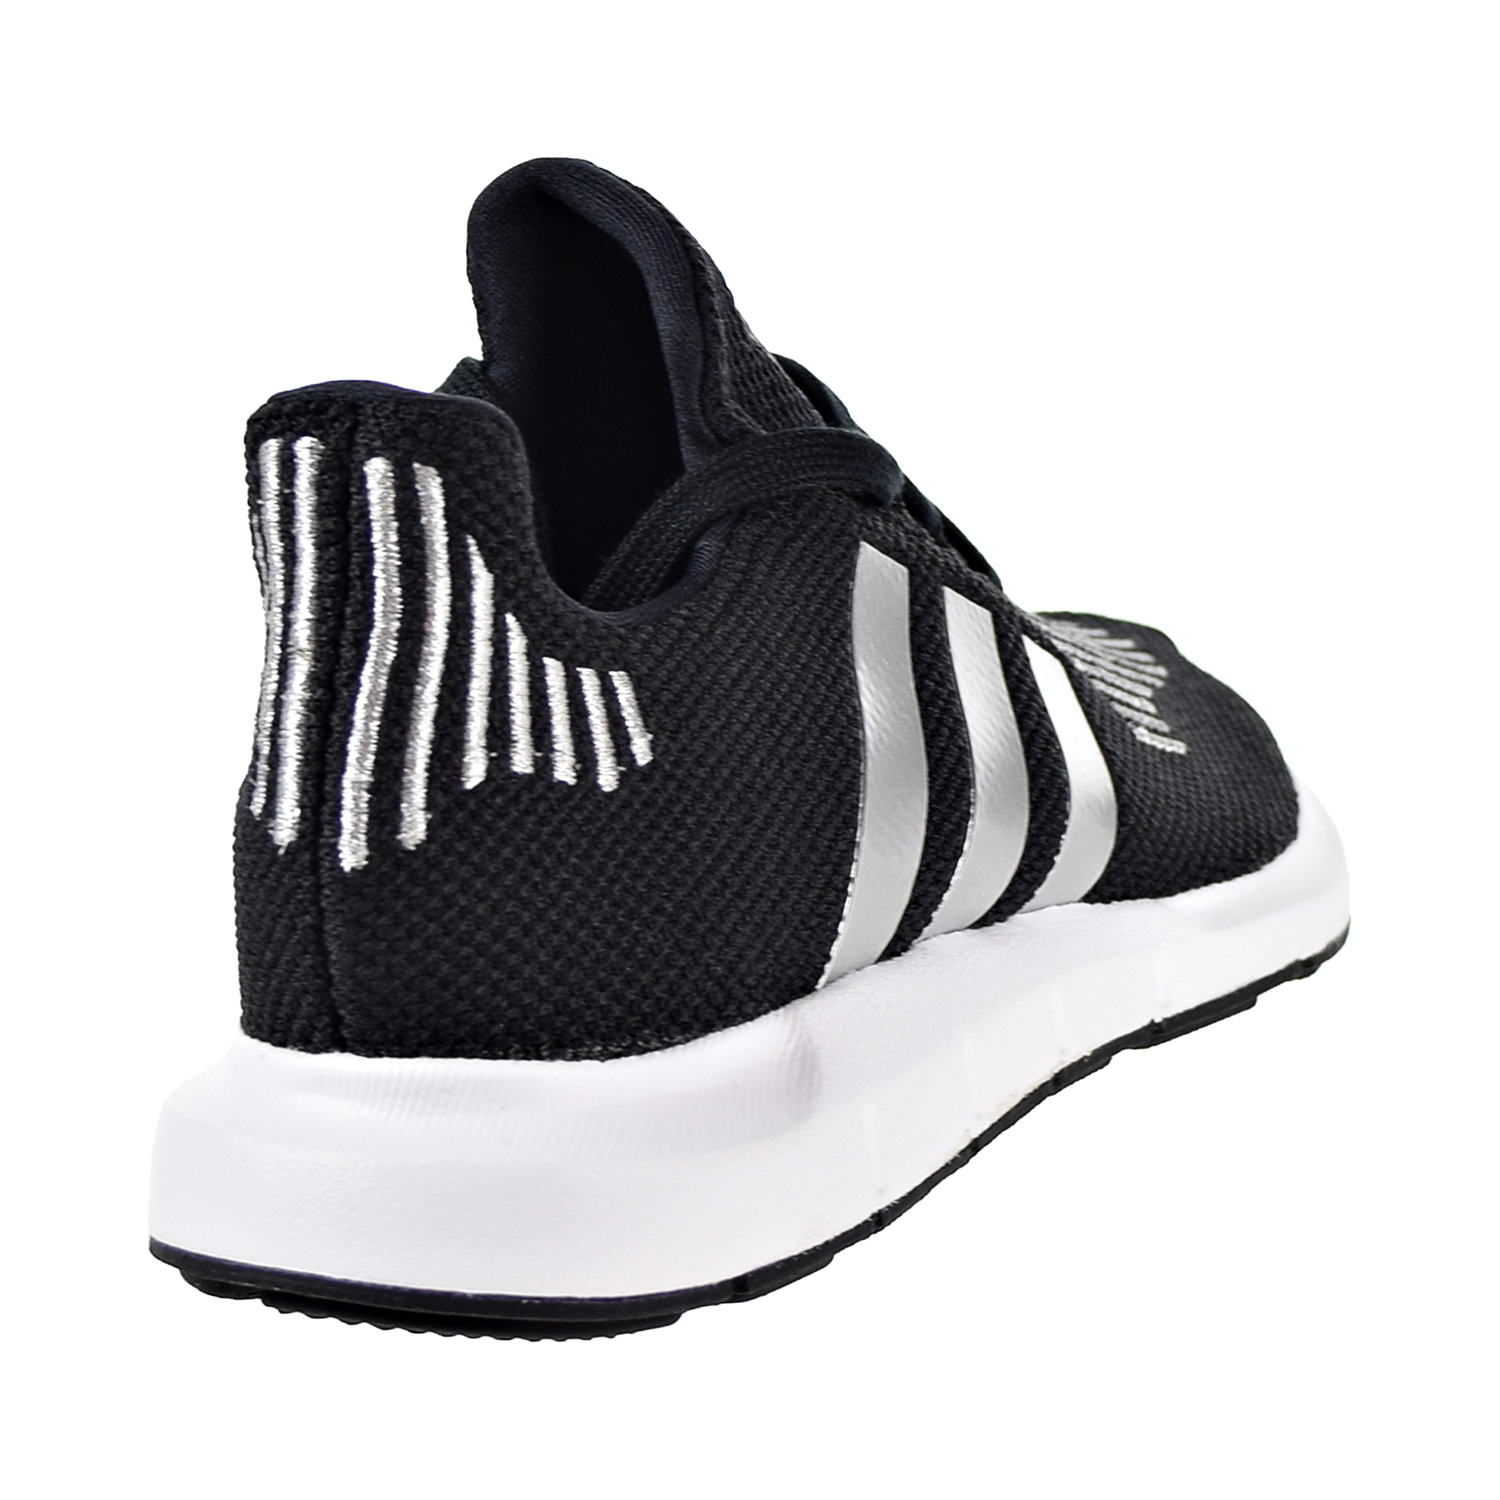 Adidas Swift Run Big Kids  Shoes Core Black Silver Metallic Footwear White  cq2597 263a2a8ad28a4